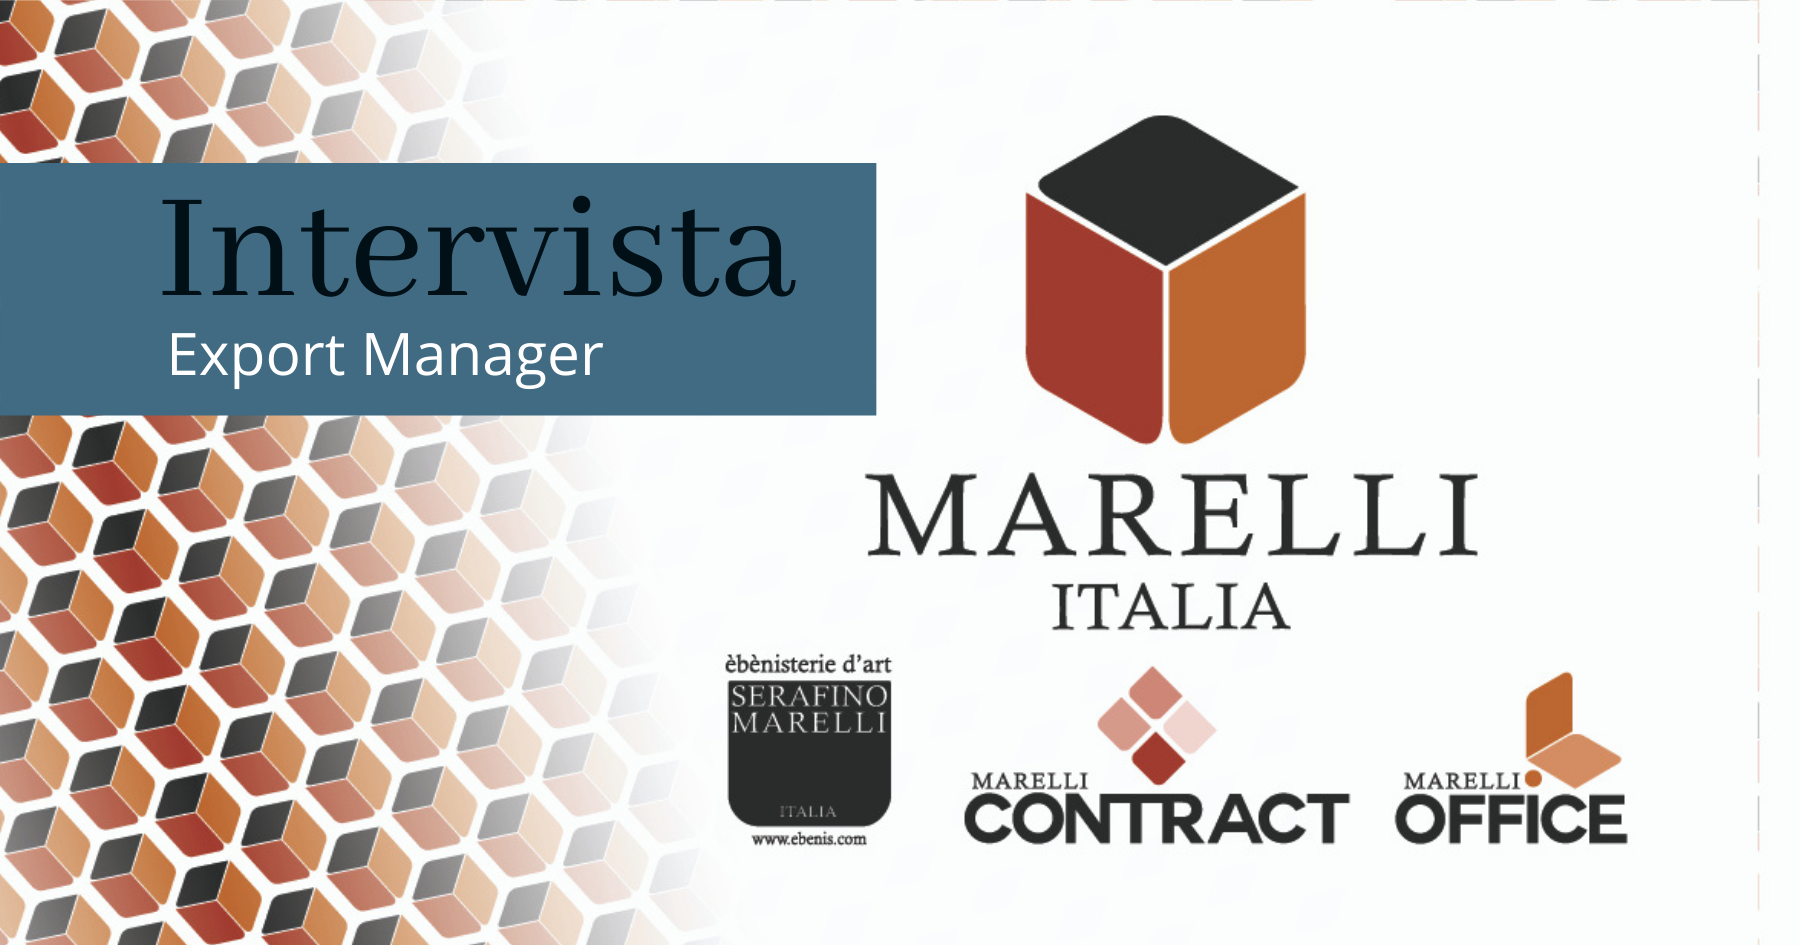 Intervista Export Manager